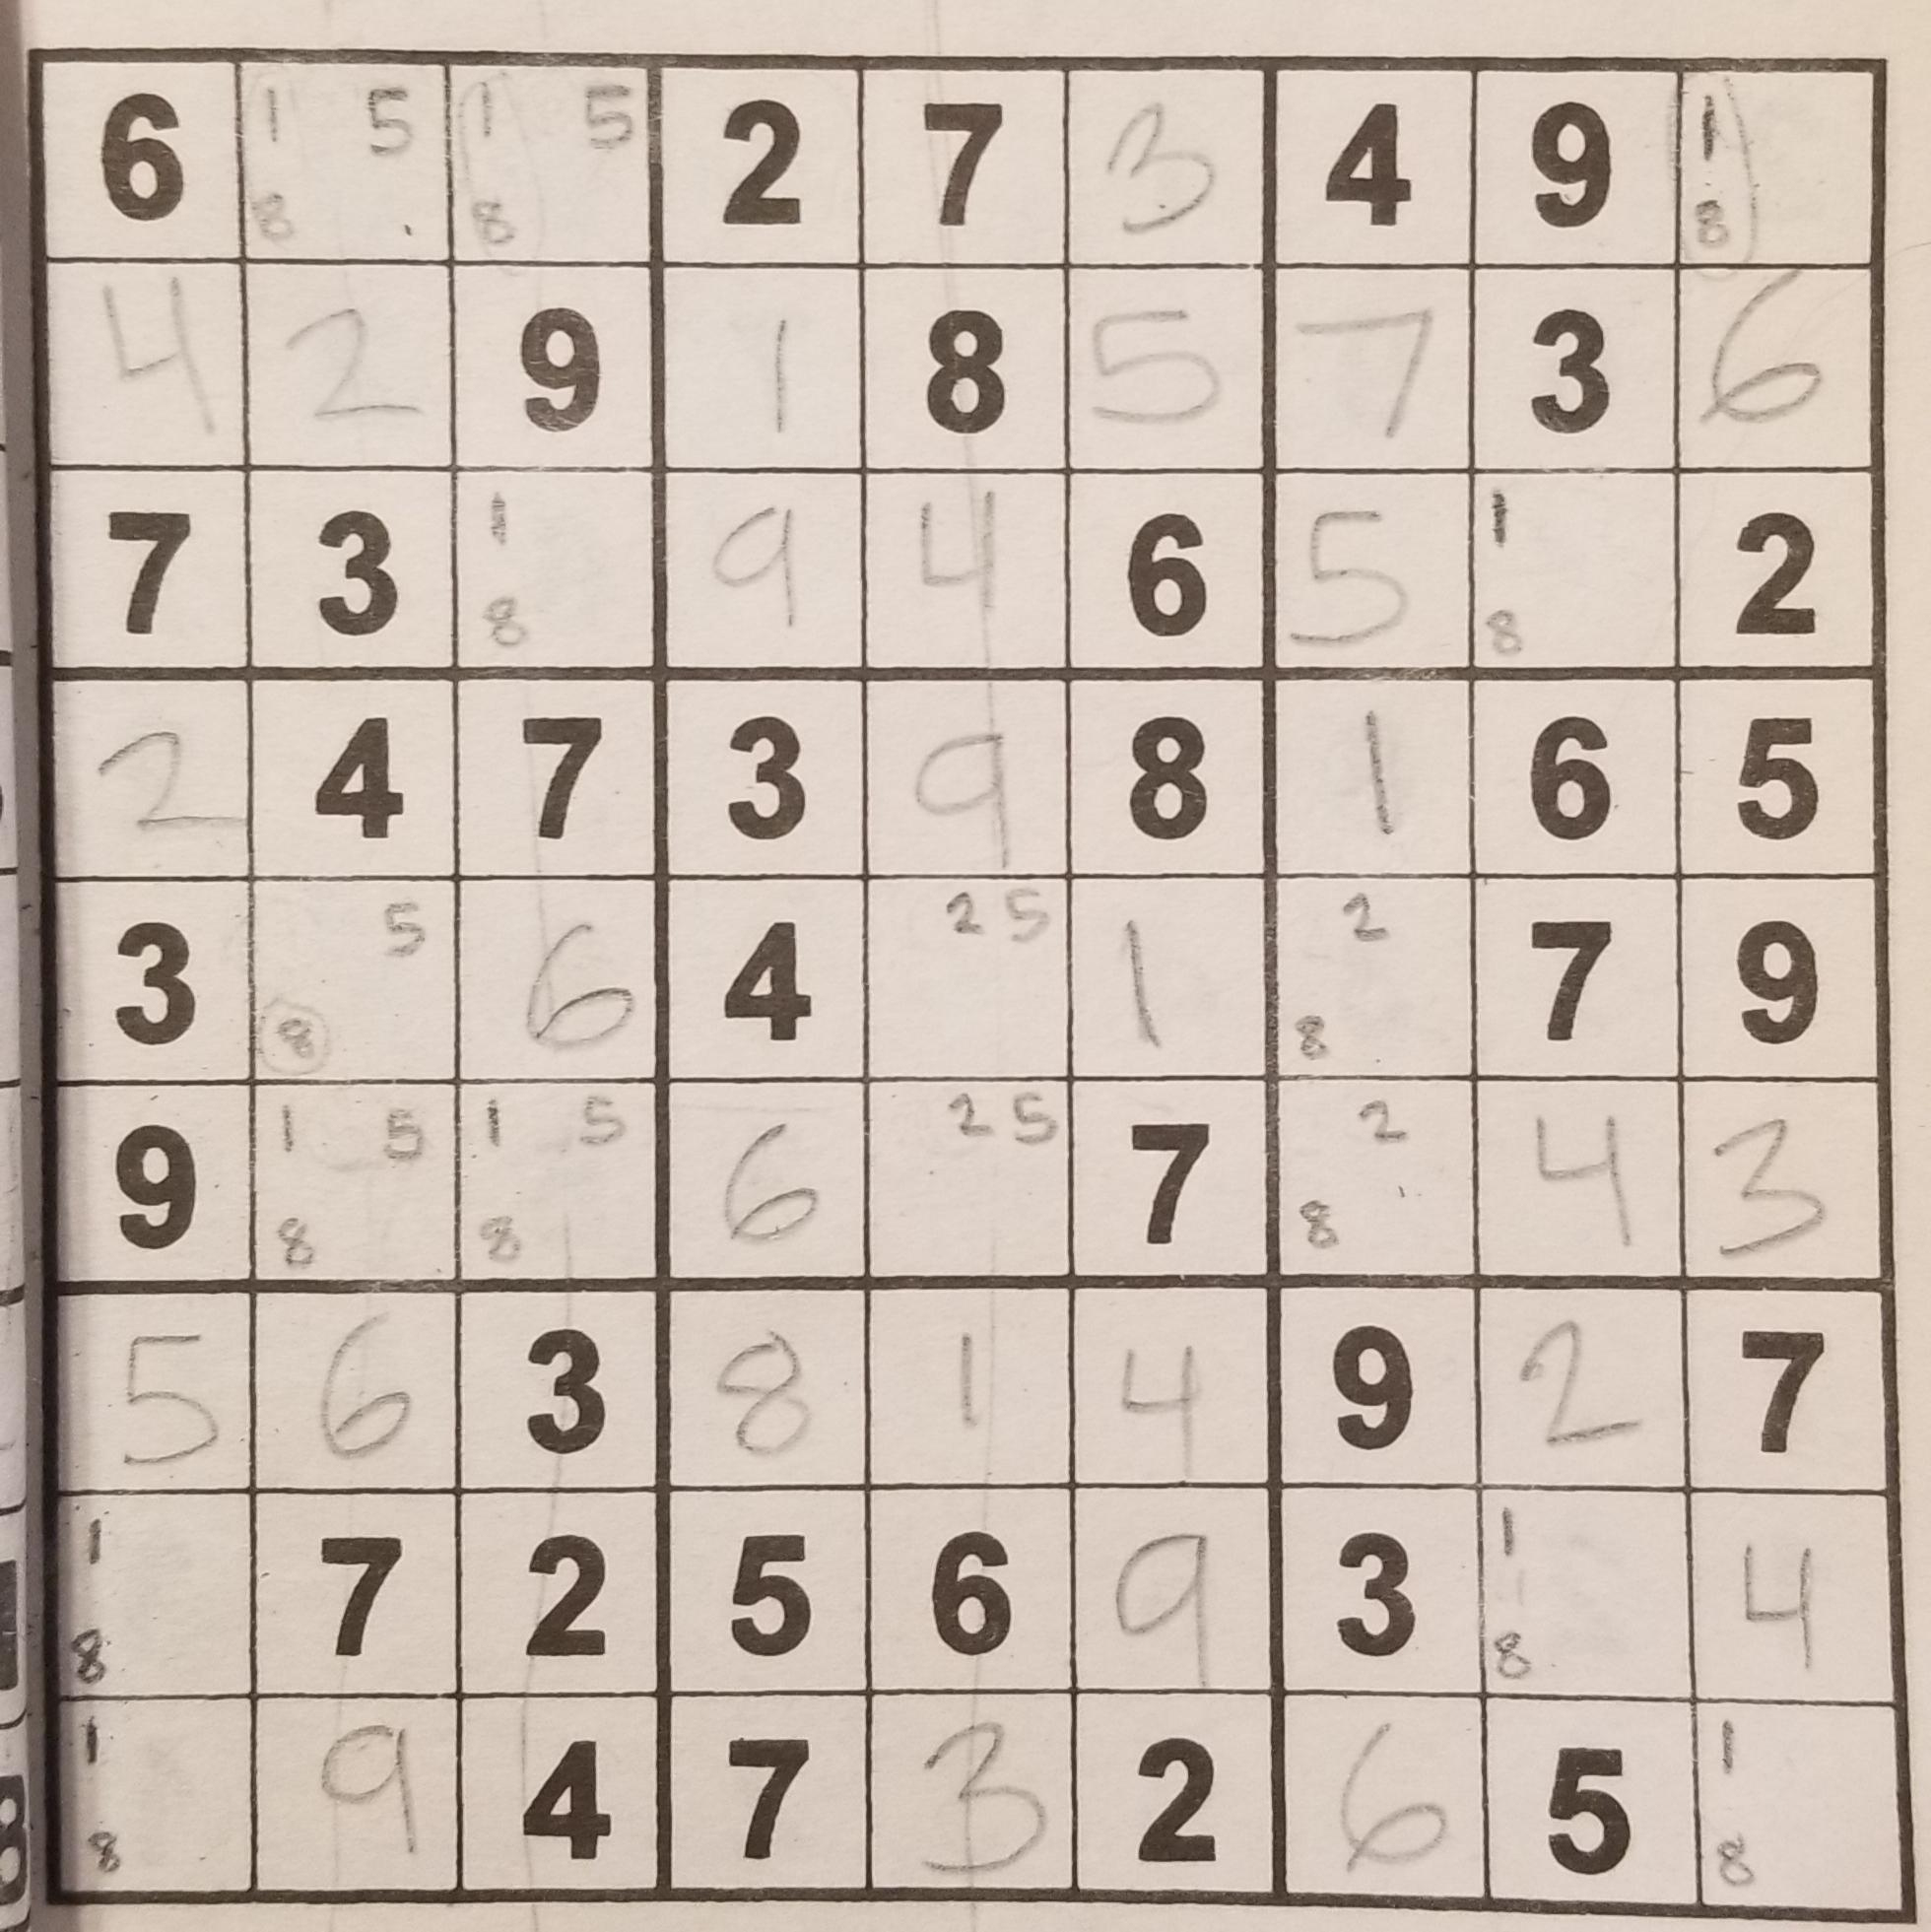 Can Someone Help Me Continue? : Sudoku